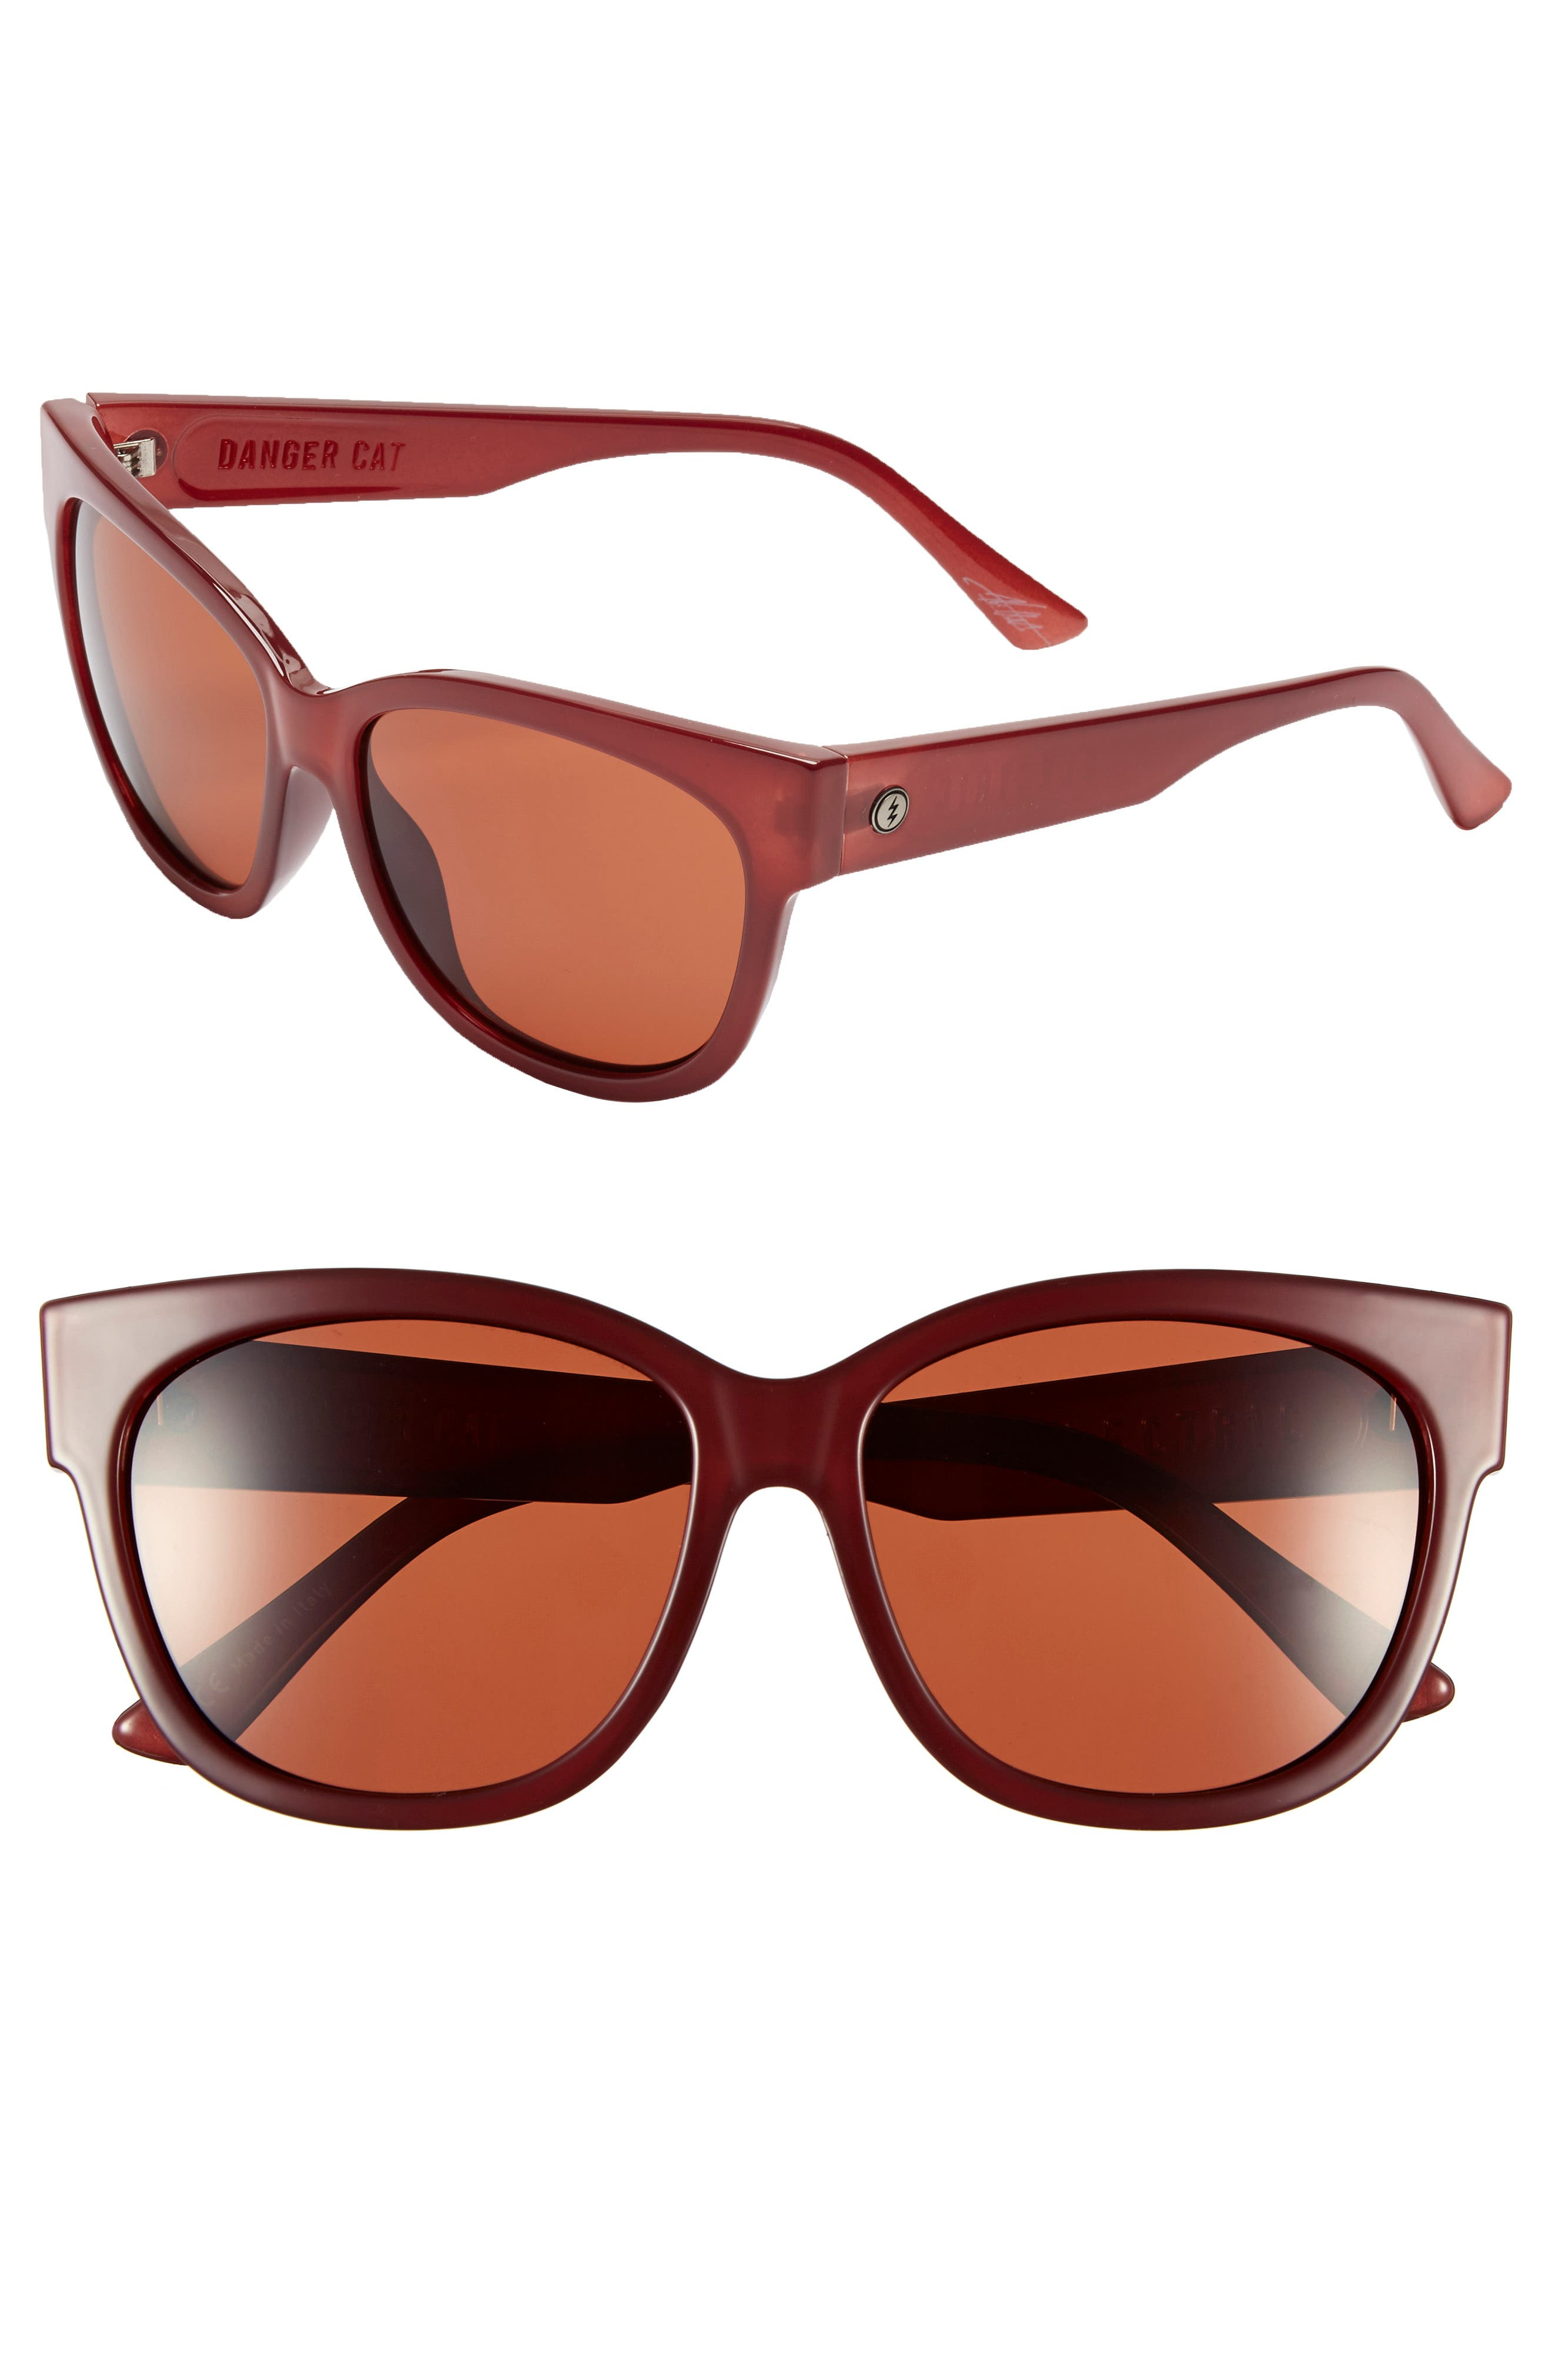 'Danger Cat' 58mm Retro Sunglasses,                             Alternate thumbnail 3, color,